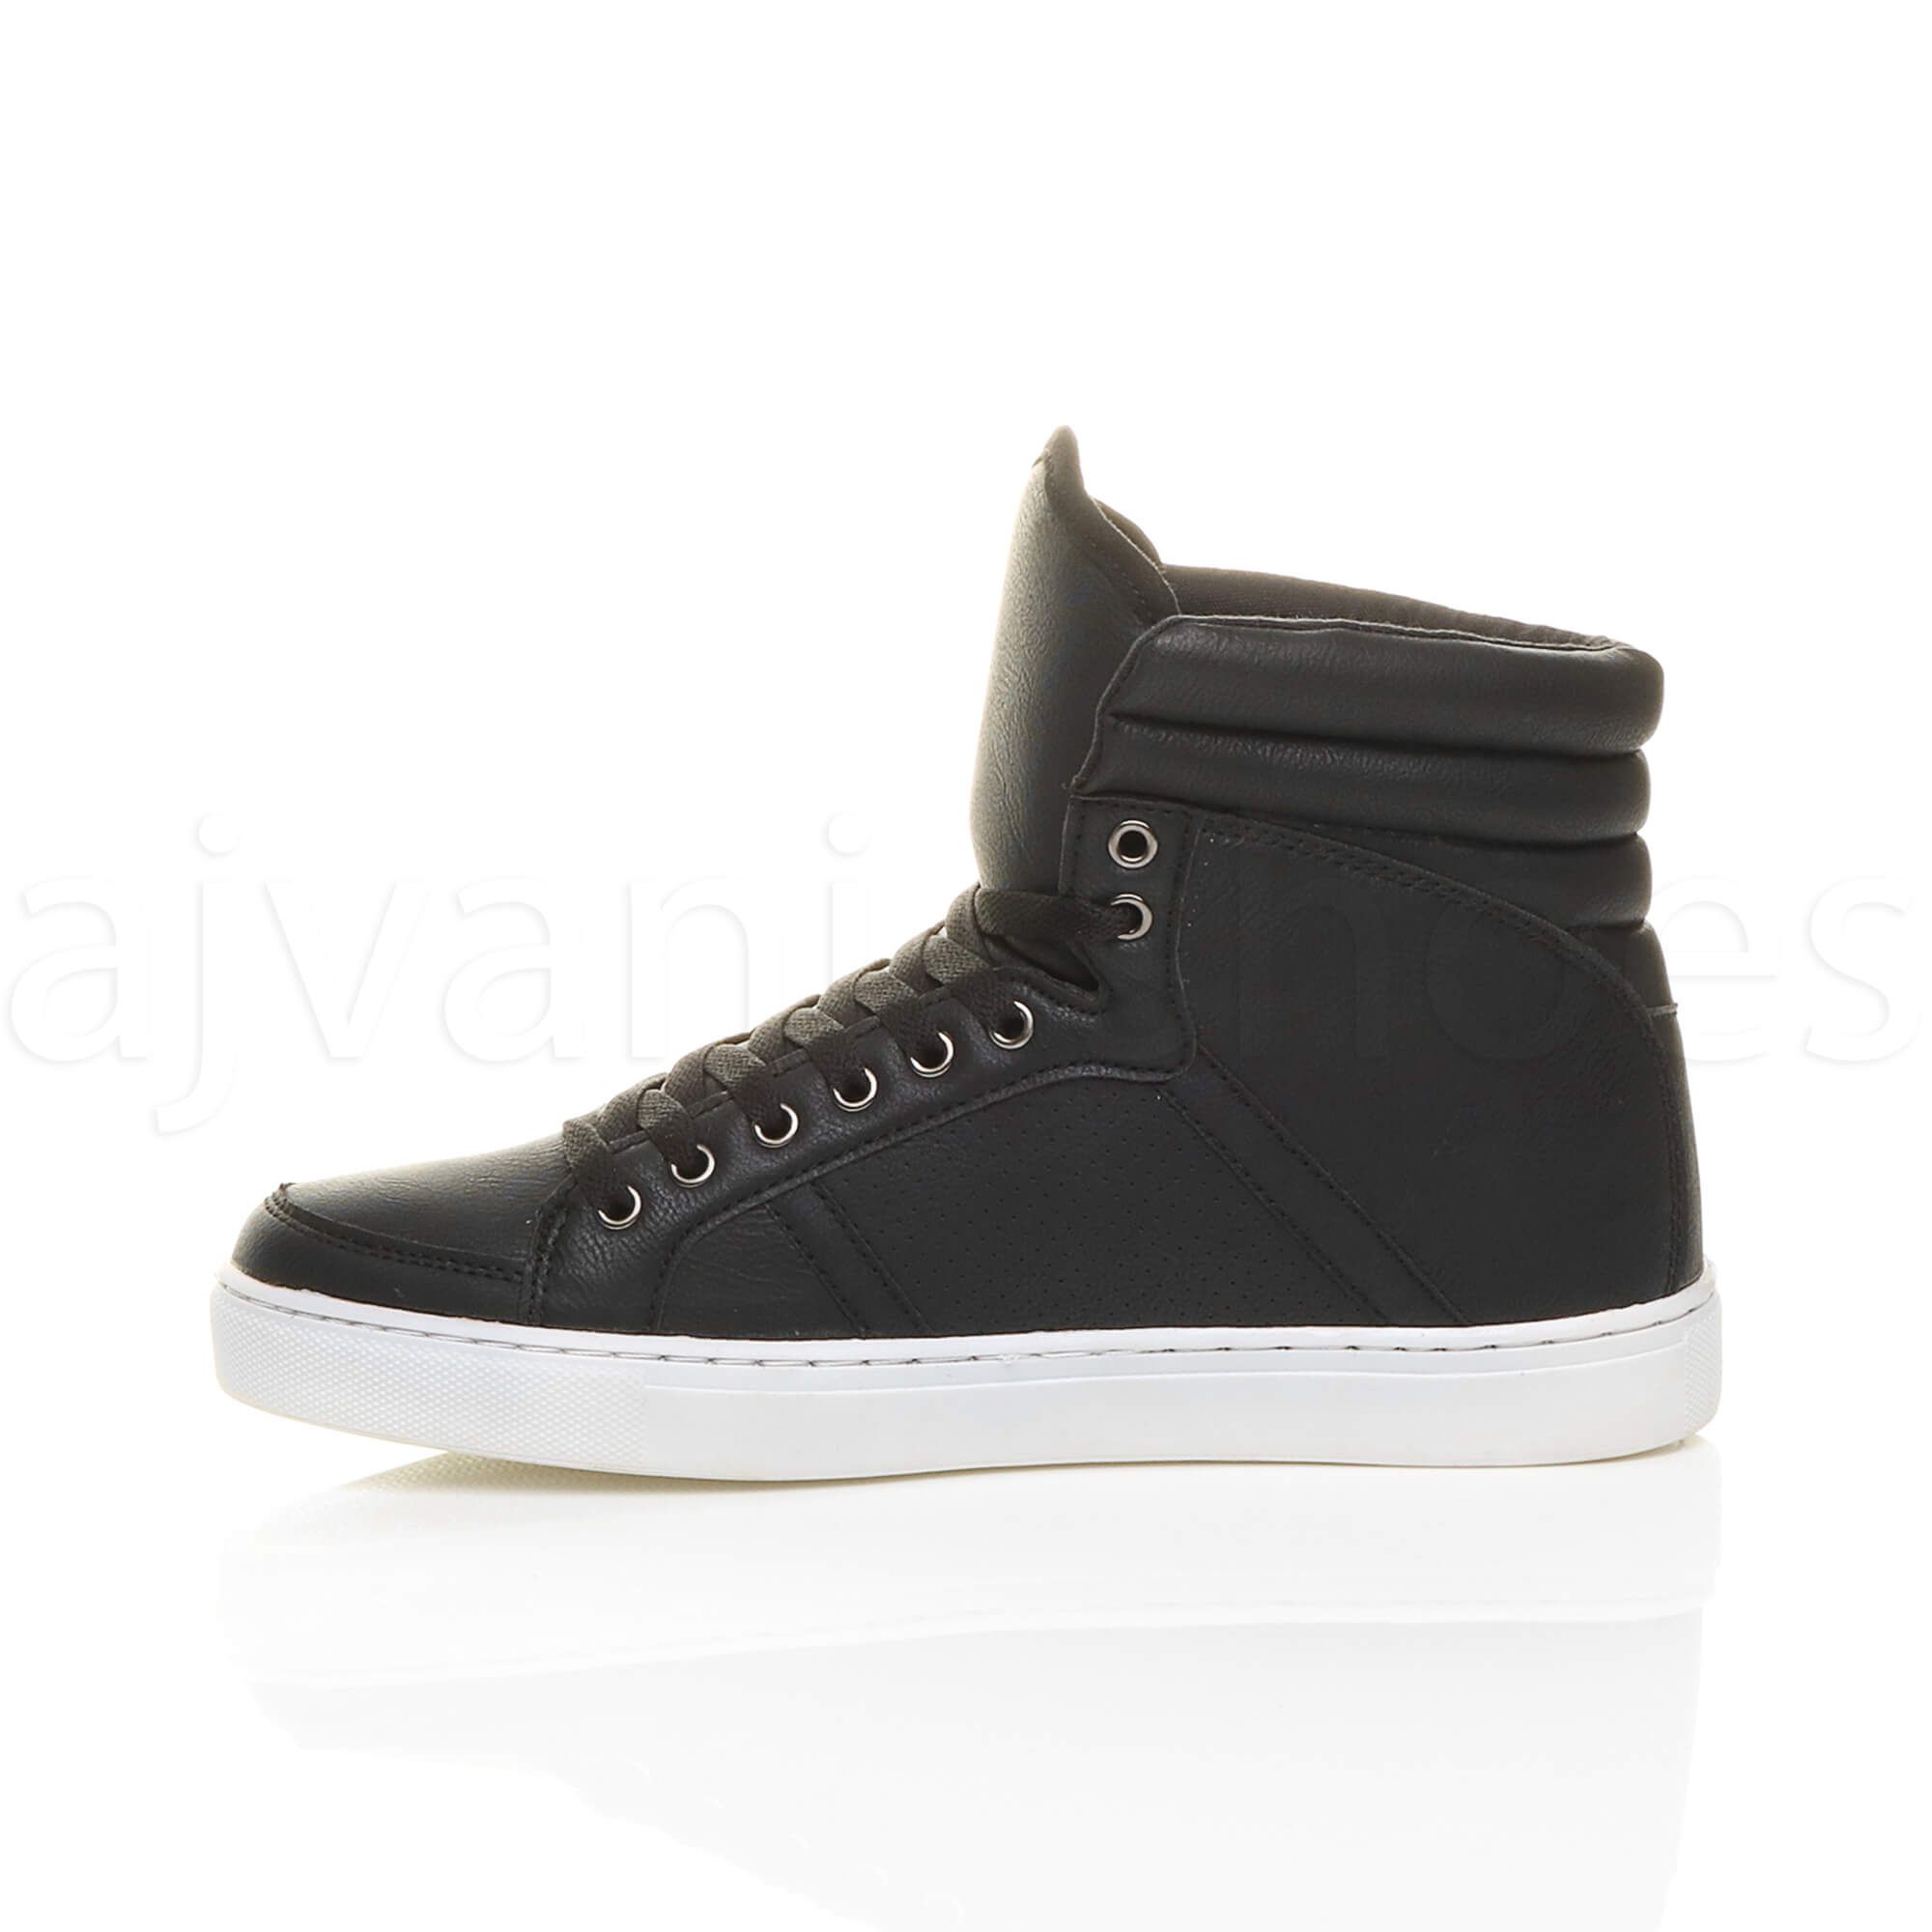 MENS-LACE-UP-CASUAL-FLAT-HI-HIGH-TOP-ANKLE-BOOTS-SHOES-TRAINERS-SNEAKERS-SIZE thumbnail 4